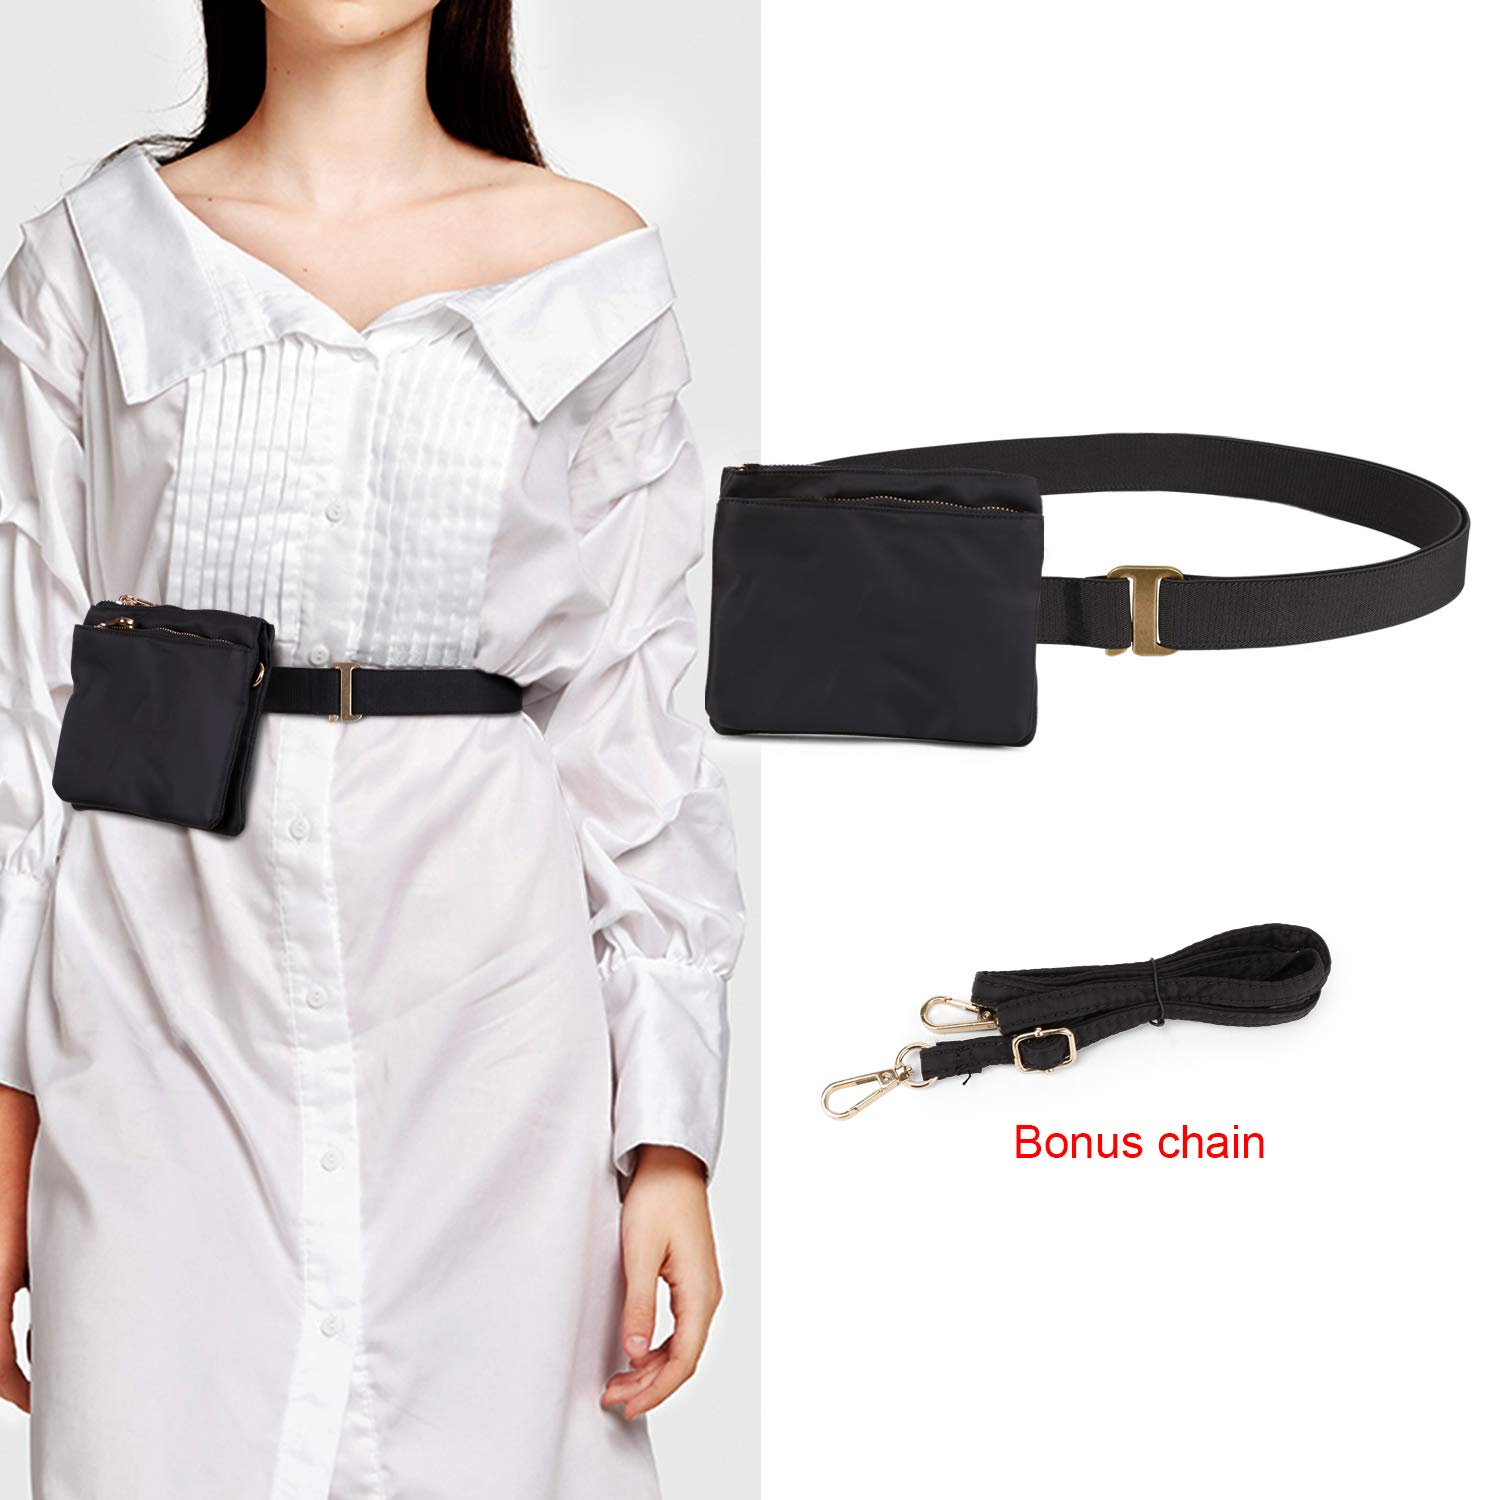 06b66433f1 No Show Women Stretch Belt Invisible Elastic Web Strap Belt with Flat Buckle  for Jeans Pants Dresses